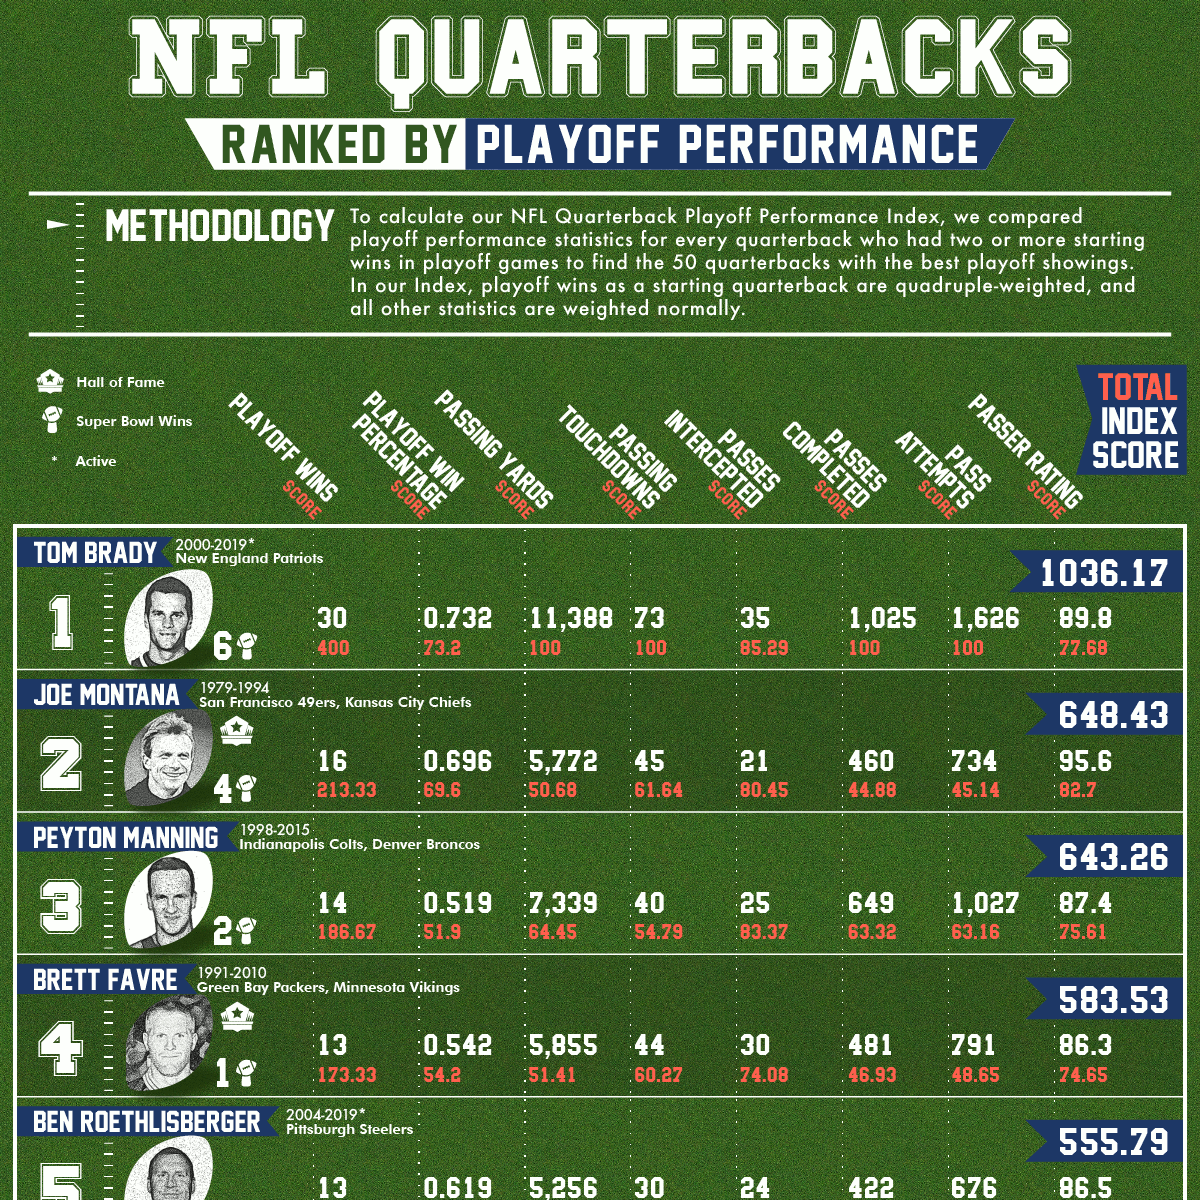 NFL Quarterbacks Ranked by Playoff Performance